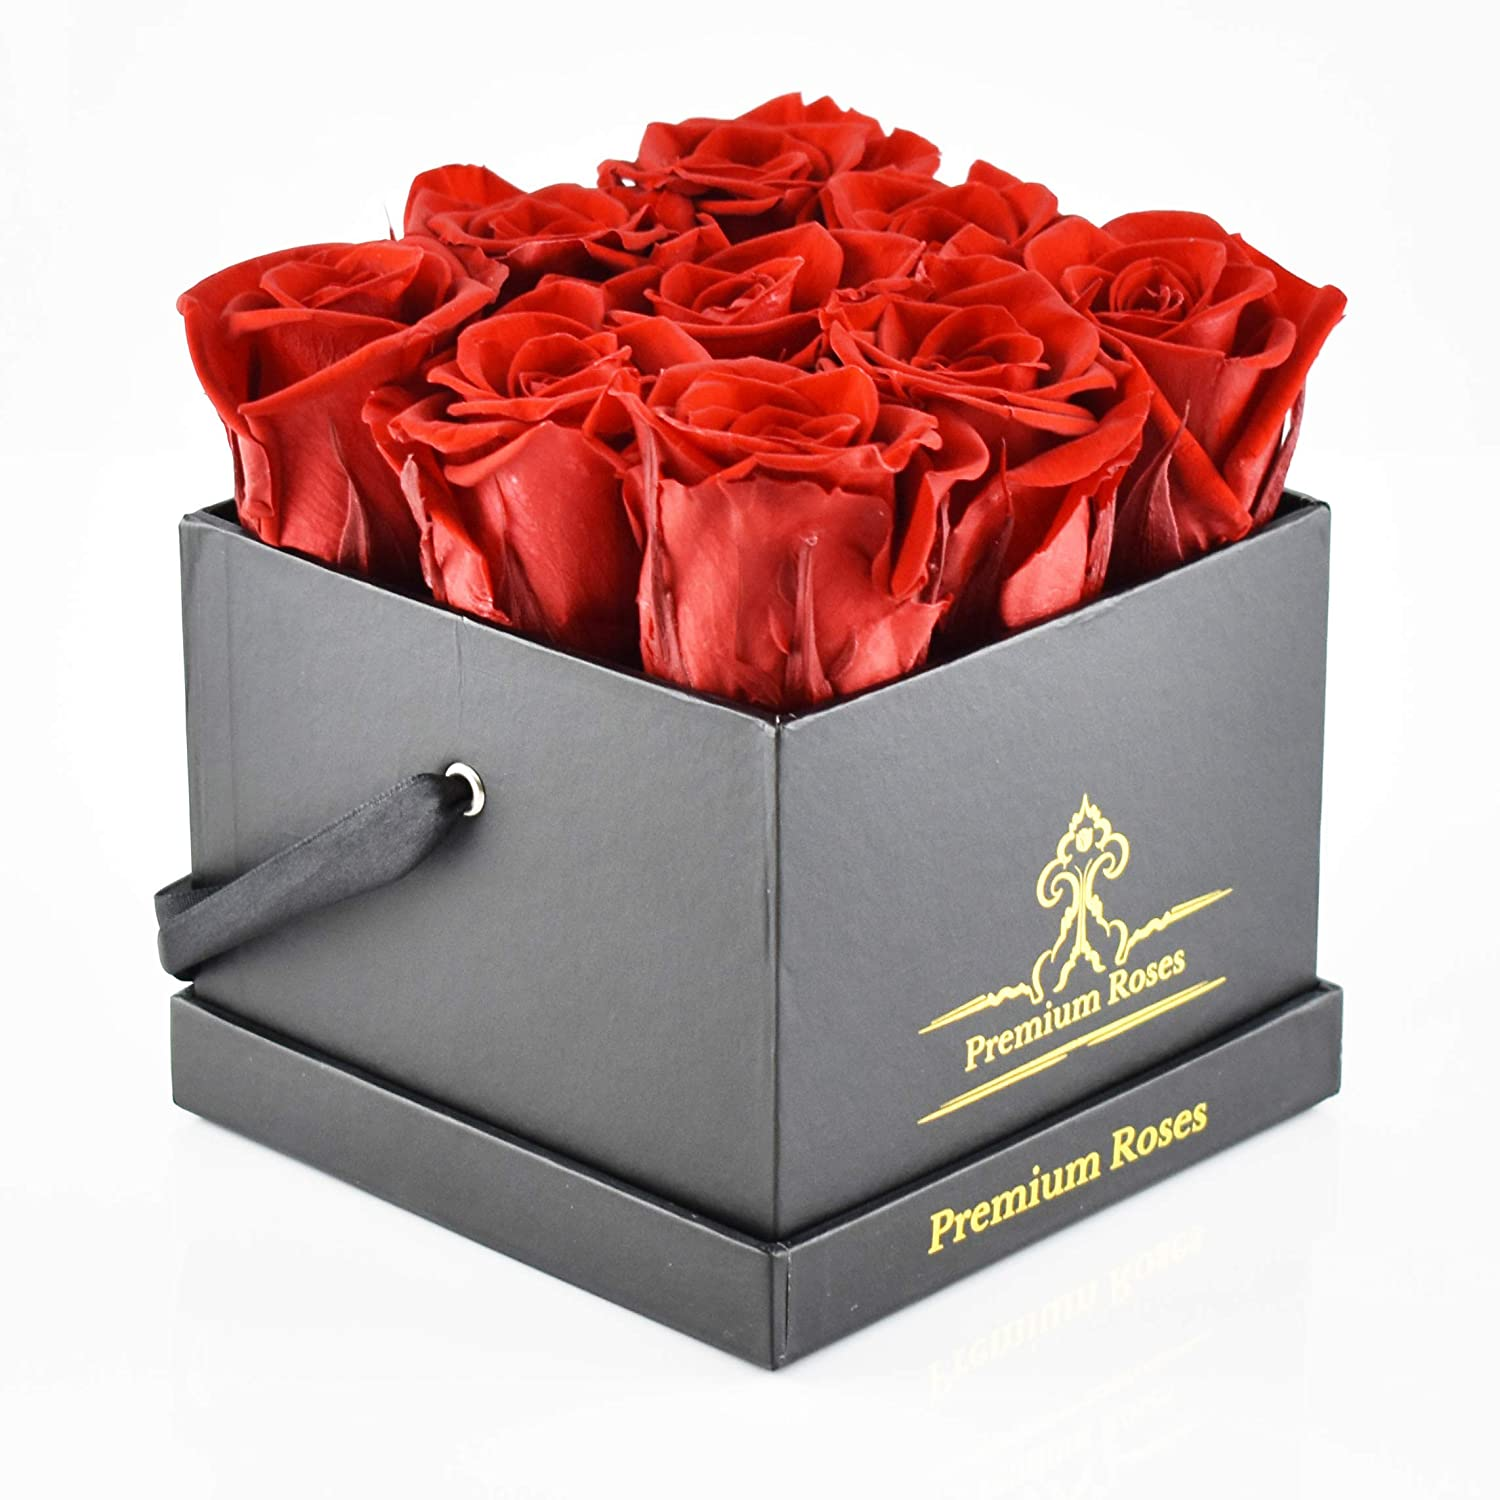 Real roses that last 365 days roses in the box best gift for her real roses that last 365 days roses in the box best gift for her anniversaries birthdays valentines day amazon grocery gourmet food izmirmasajfo